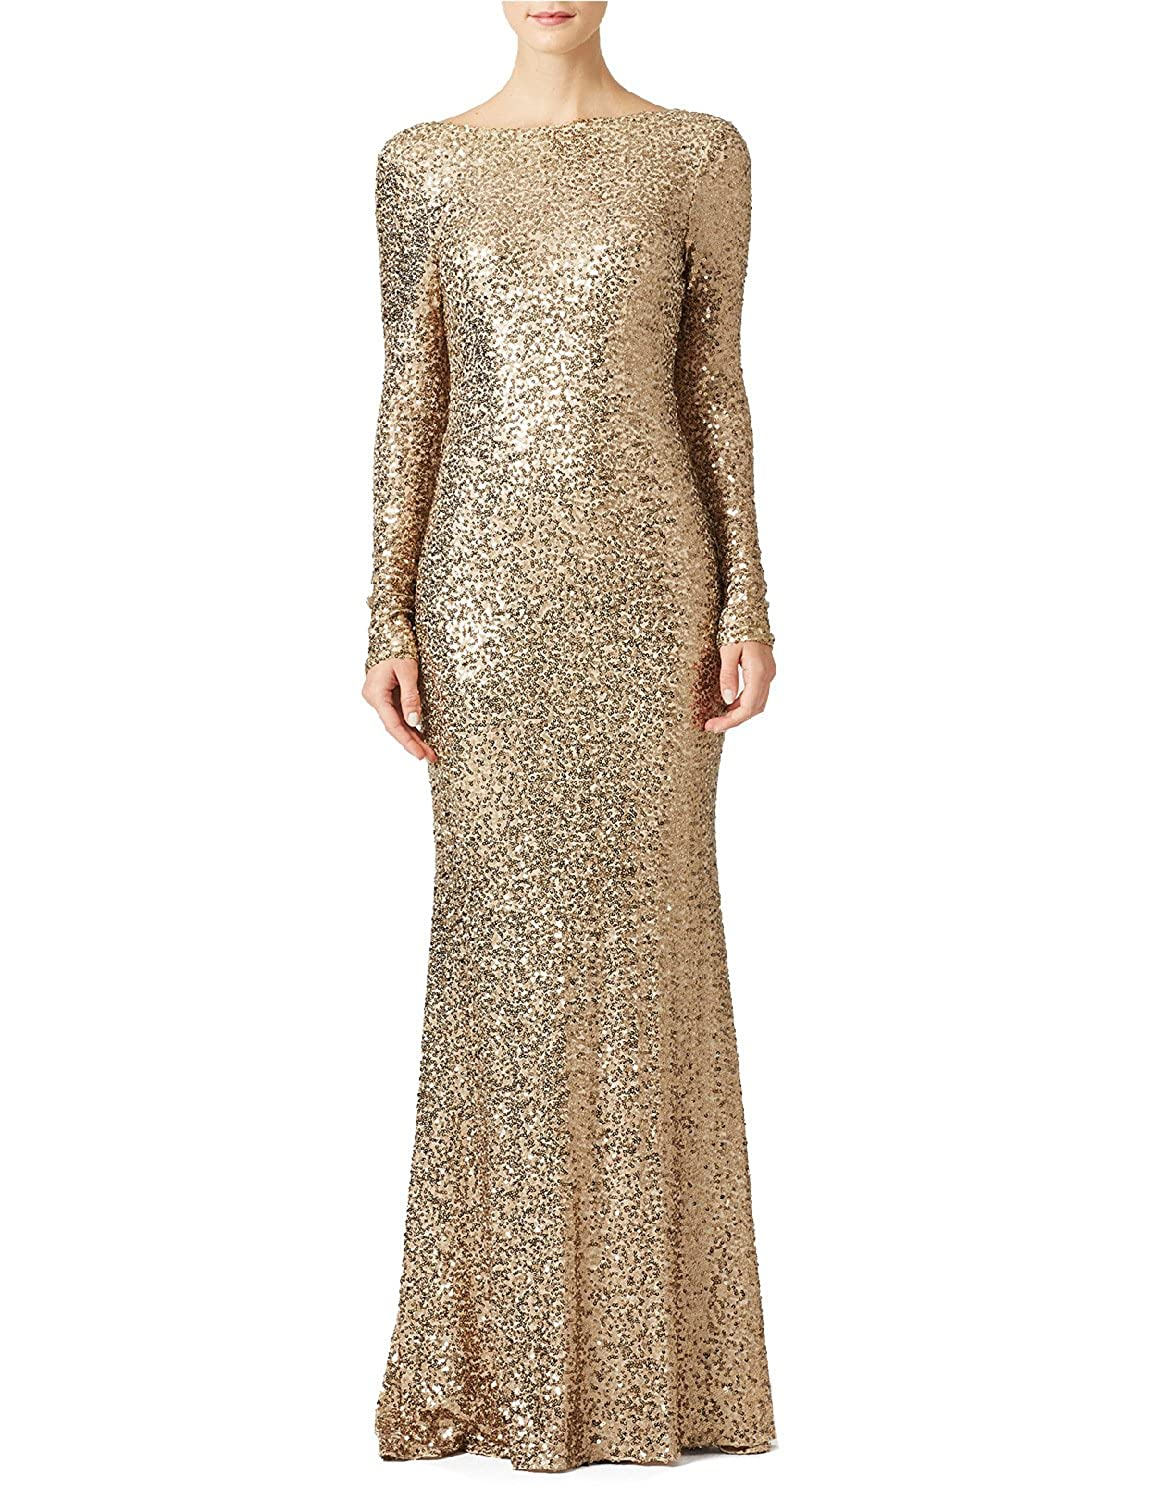 JoJoBridal Womens Sequined Long Evening Formal Dresses with Sleeves M016